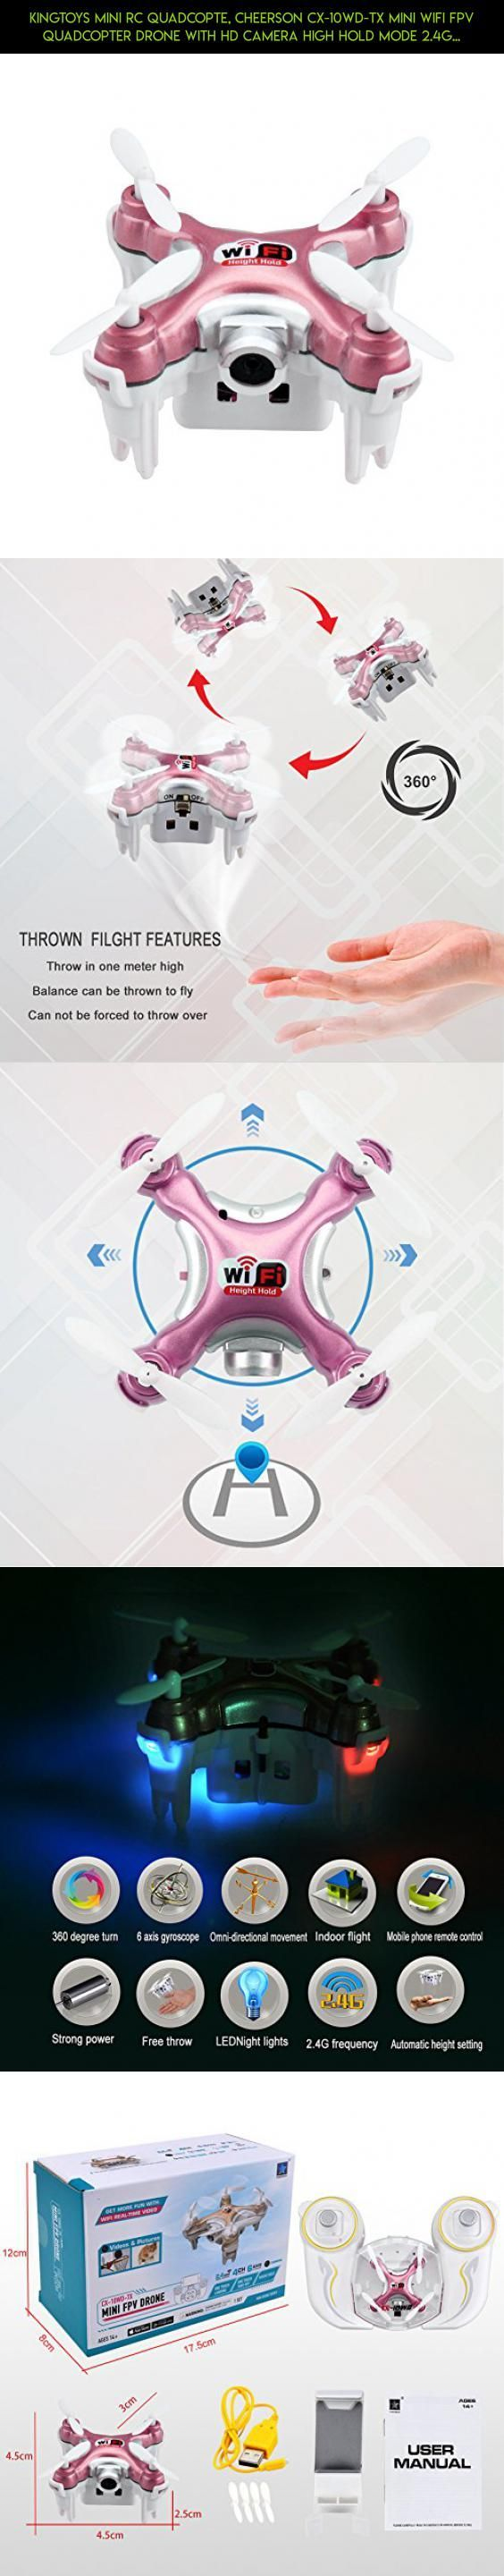 Kingtoys Mini RC Quadcopte, Cheerson CX-10WD-TX Mini Wifi FPV Quadcopter Drone With HD Camera High Hold Mode 2.4G 6-axis Remote Control Nano Quadcopter RTF Mode Switch(Blue) #camera #gadgets #drone #cheerson #products #tech #parts #racing #plans #phantom #kit #shopping #technology #fpv